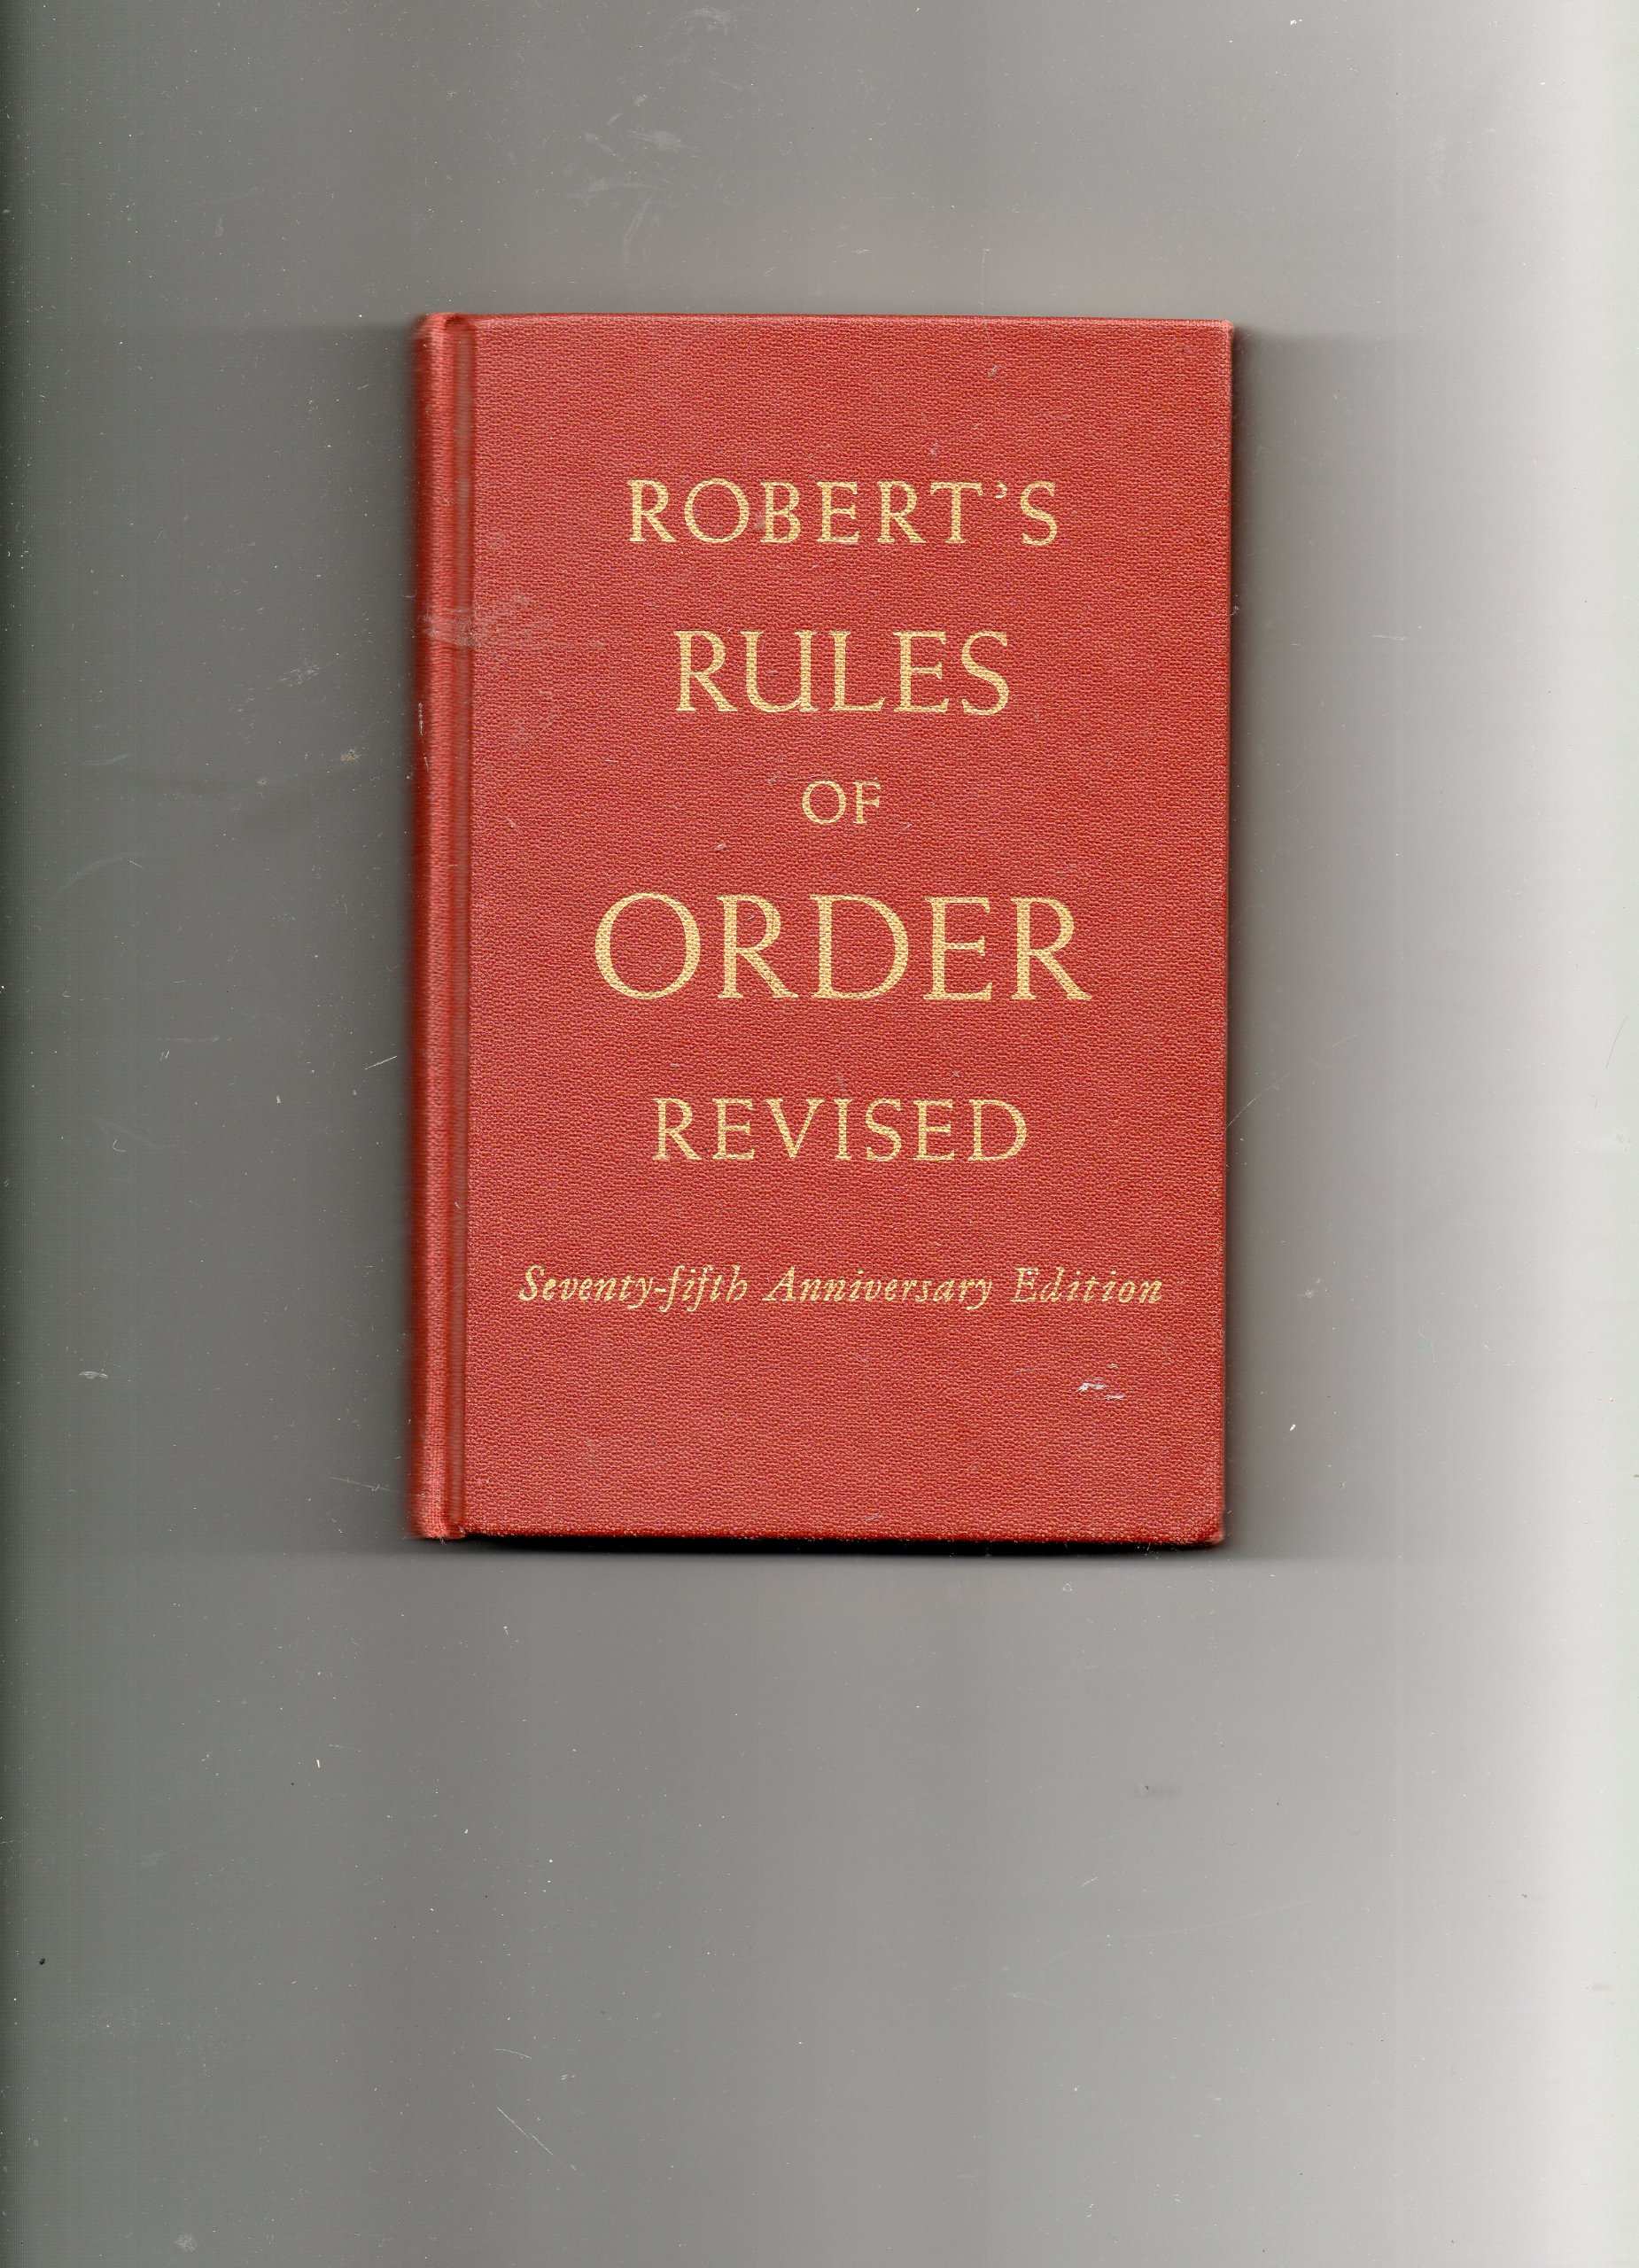 Robert's rules of order, revised, Robert, Henry M